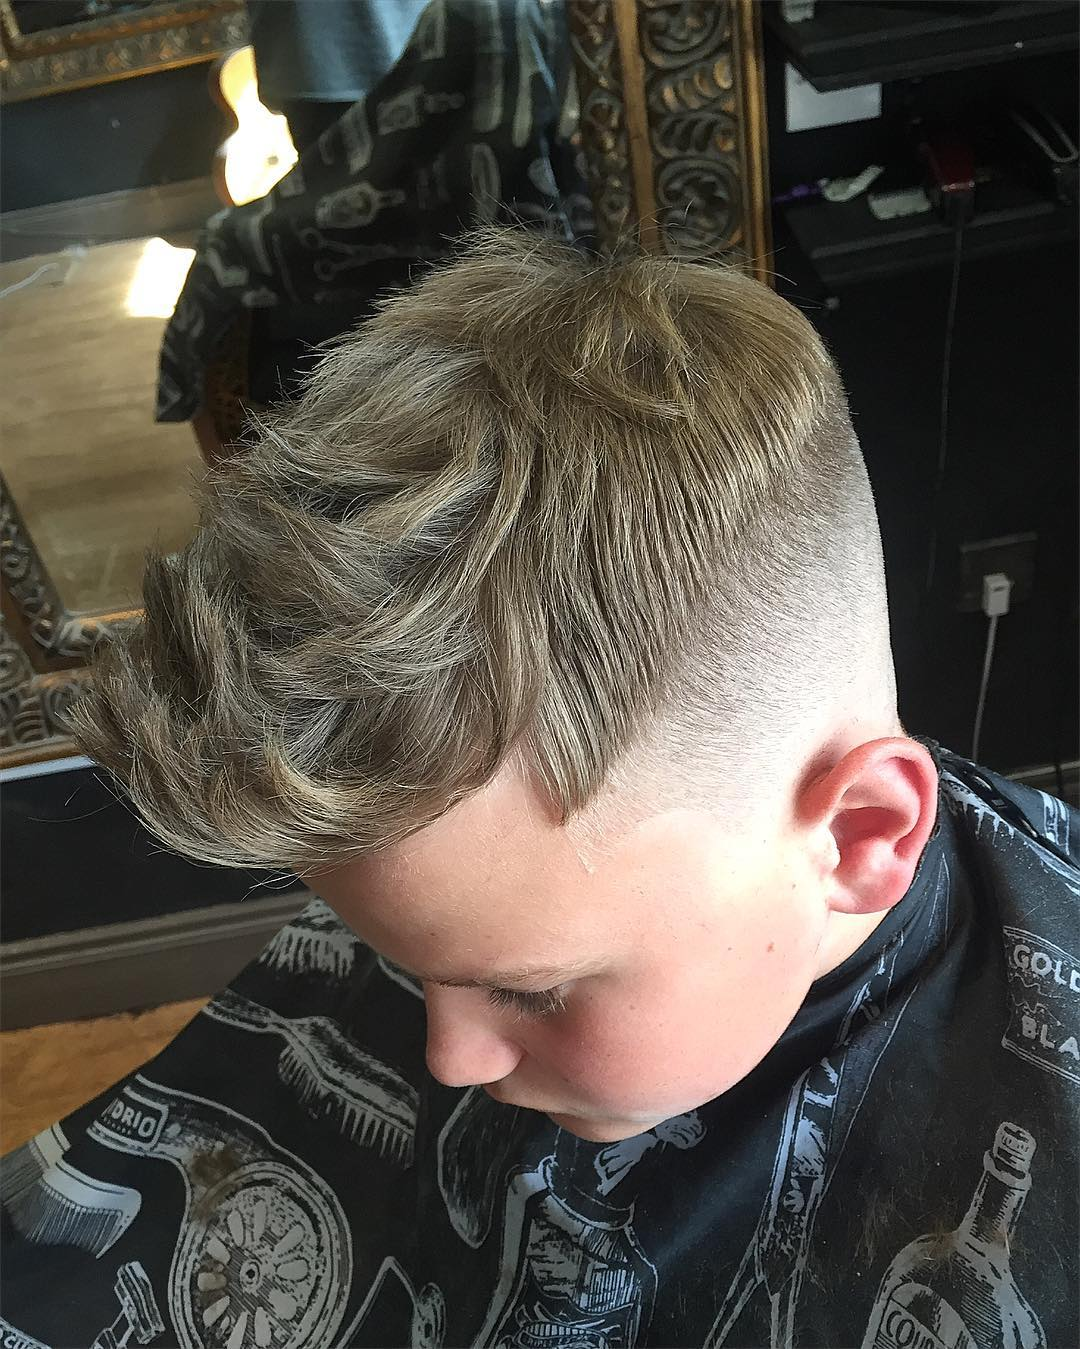 conortaaffehair-cool-mens-haircut-with-angles-and-shapes